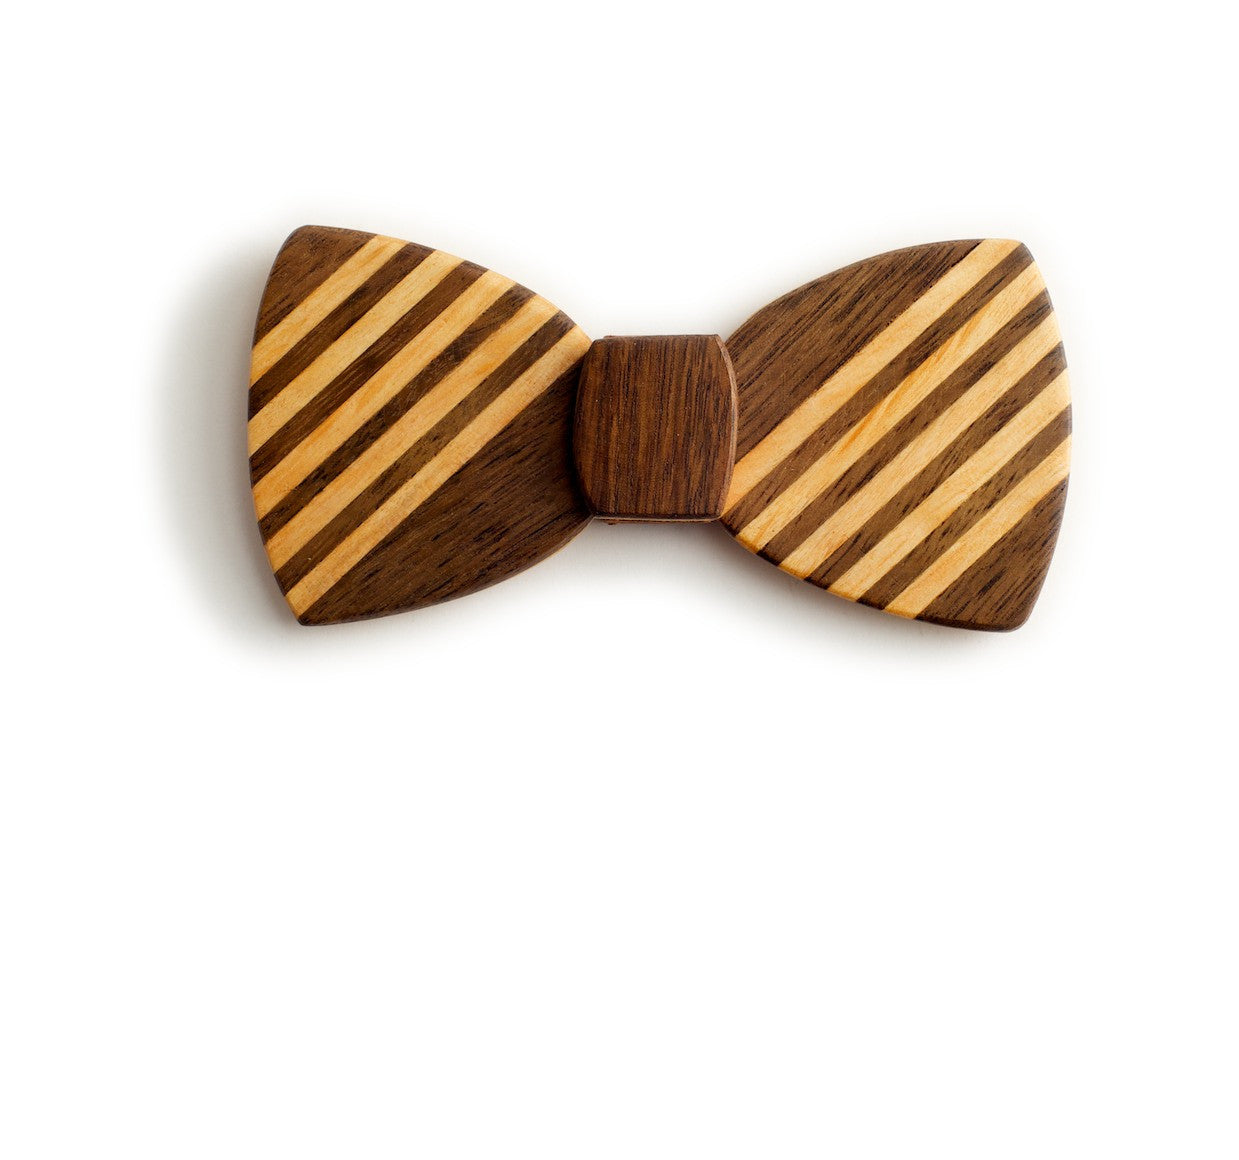 unique original quirky gift for men wood bow tie schoolboy dark